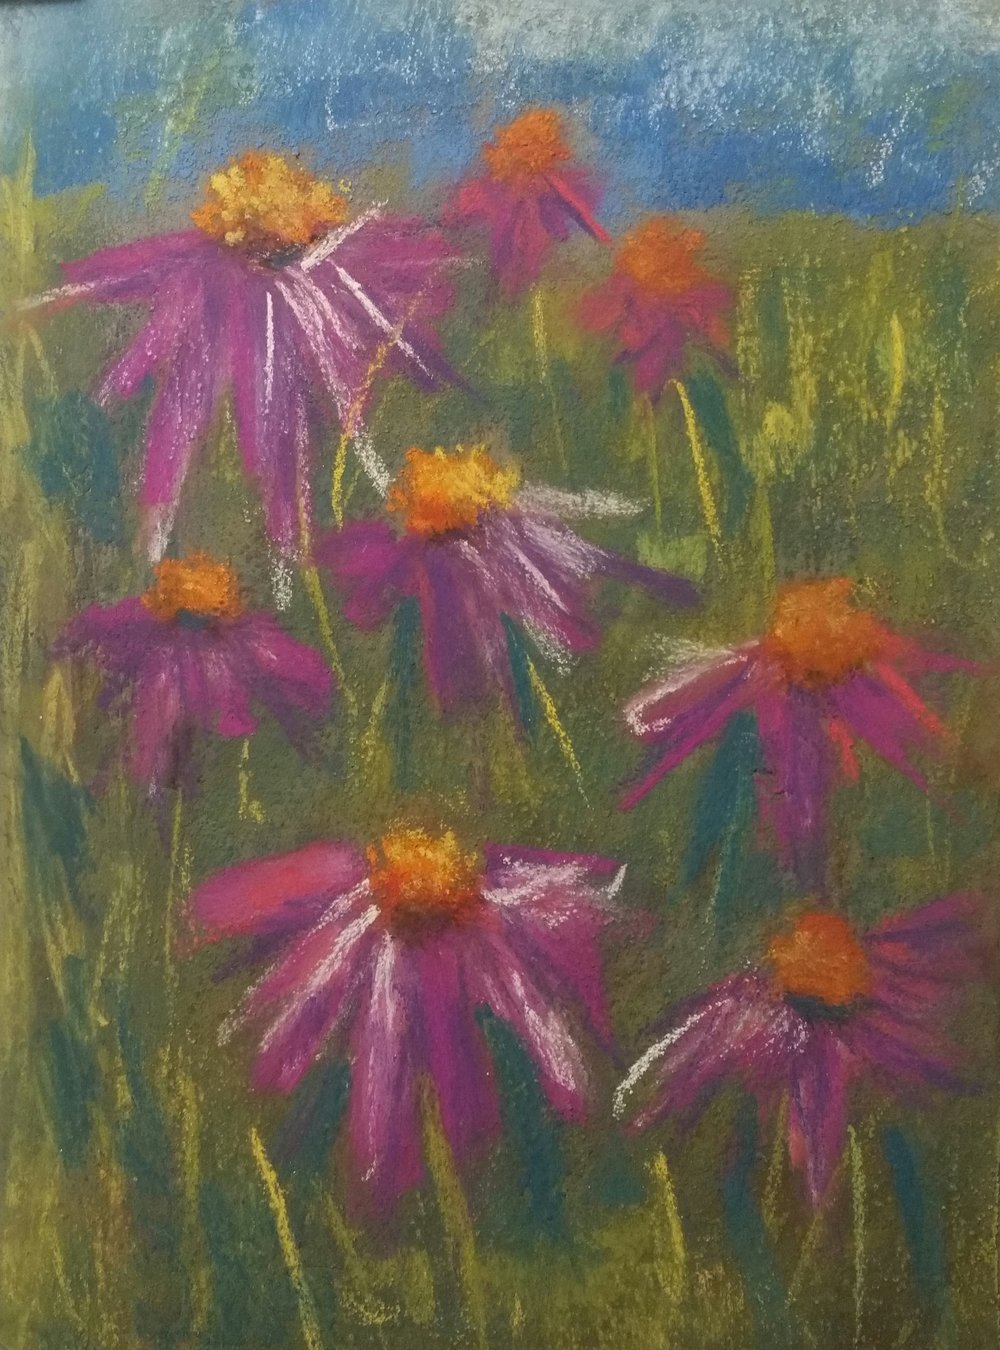 This was done in a pastel class I took last month at the Northville Art House. It's a new medium for me, and involved a lot of experimentation. It was frustrating as hell, but worth pushing through to figure out what papers I like and what all the different types of pastels can do.